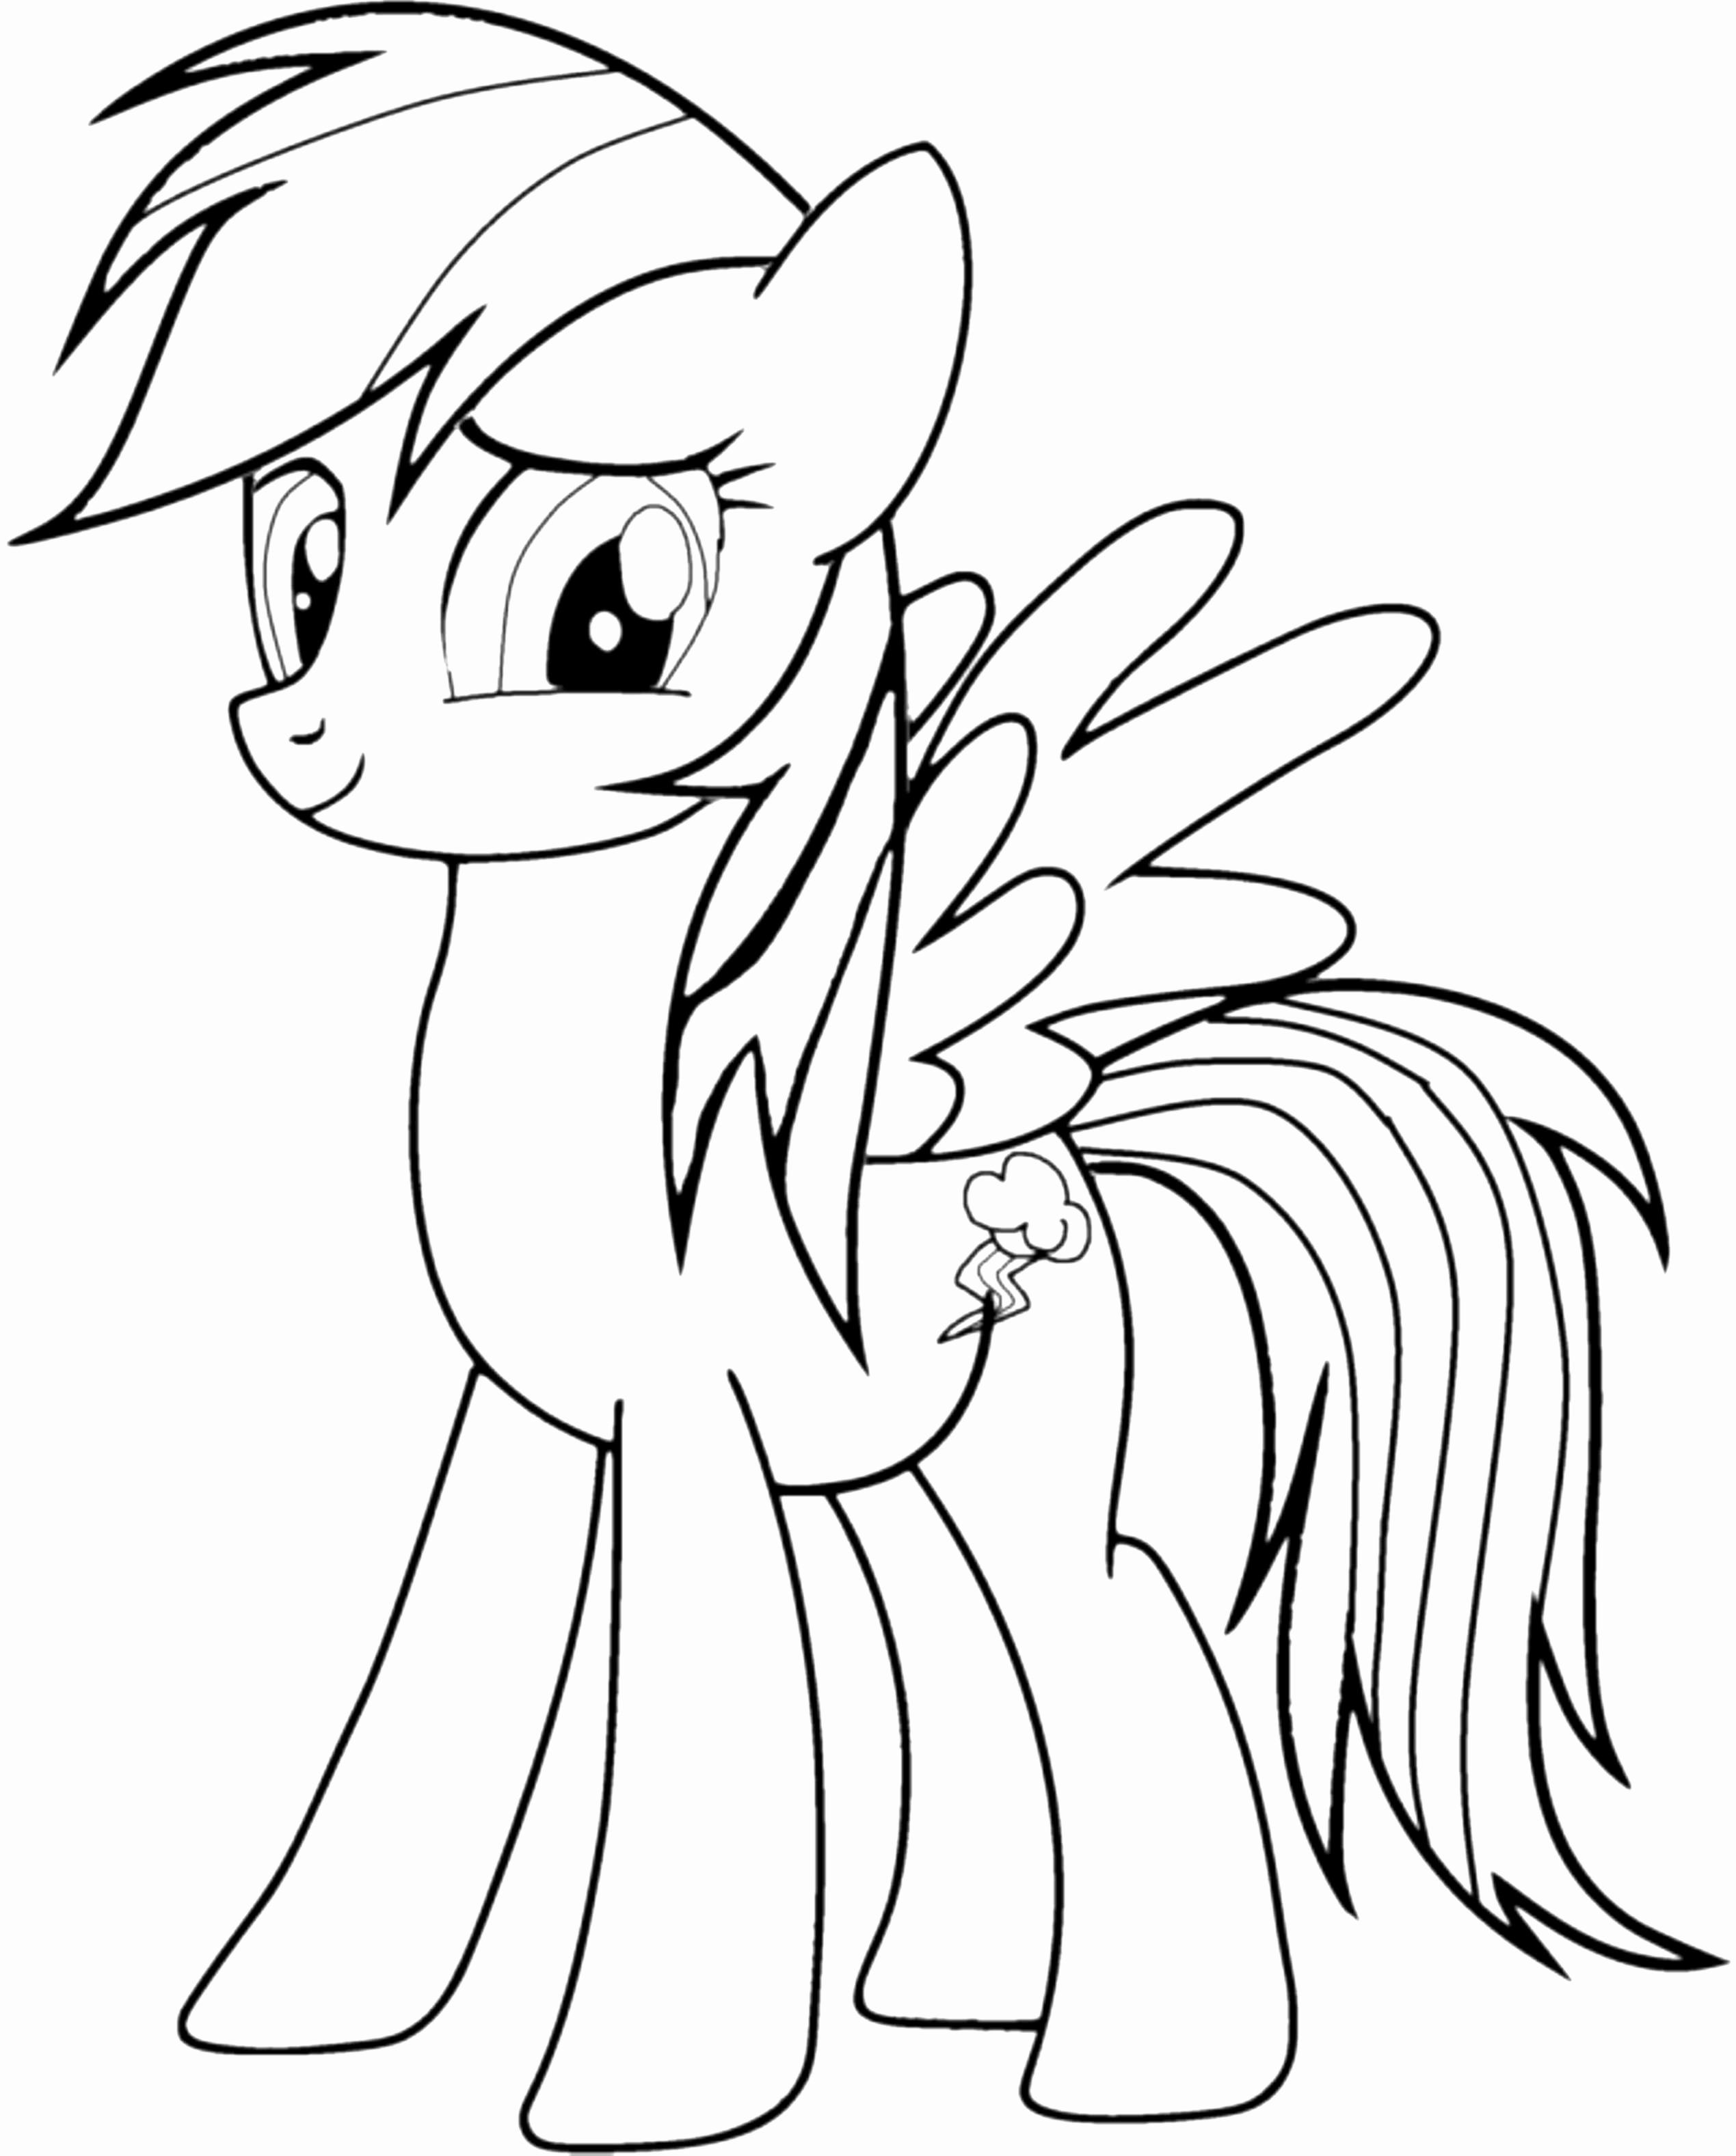 Printable Rainbow Coloring Sheet Beautiful Rainbow Dash Coloring Pages Best Coloring Pages My Little Pony Coloring Horse Coloring Pages Cartoon Coloring Pages